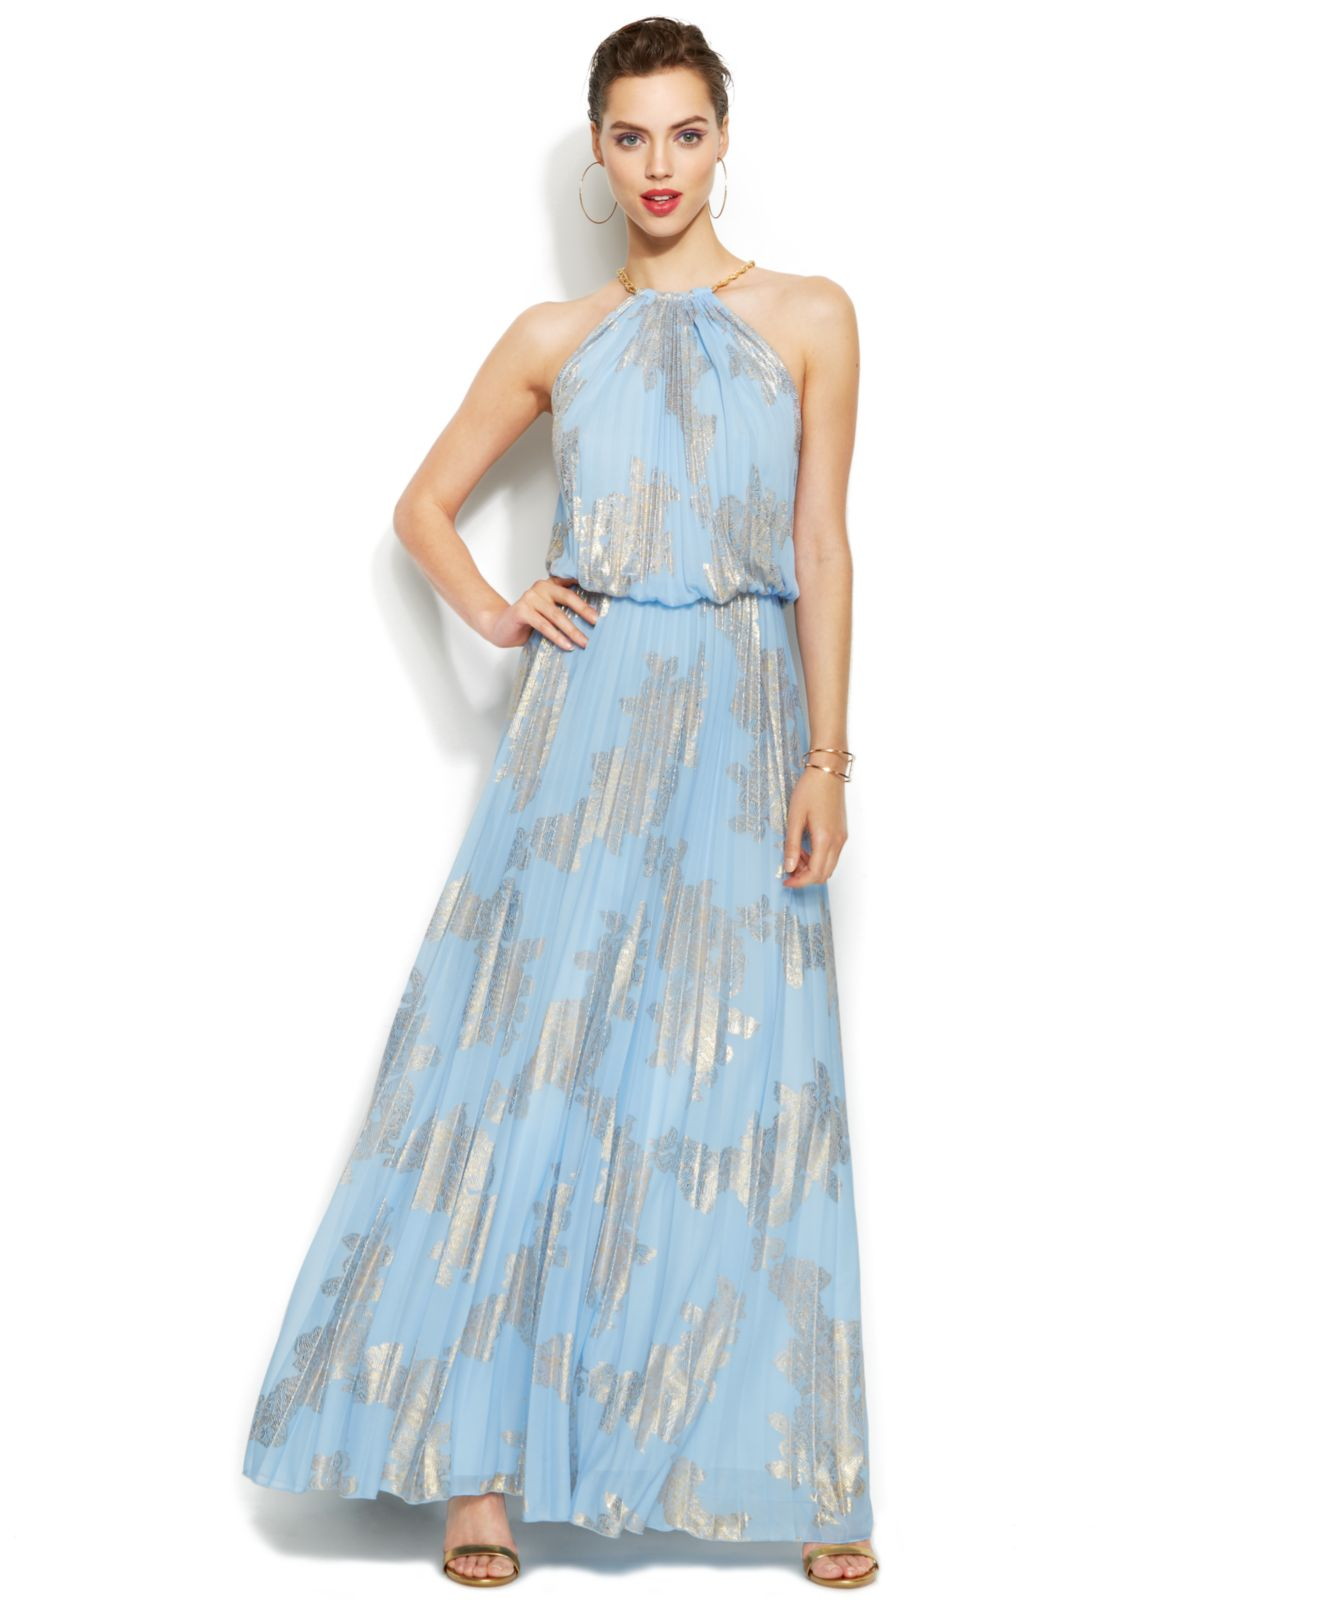 Purchase > xscape light blue dress, Up to 61% OFF